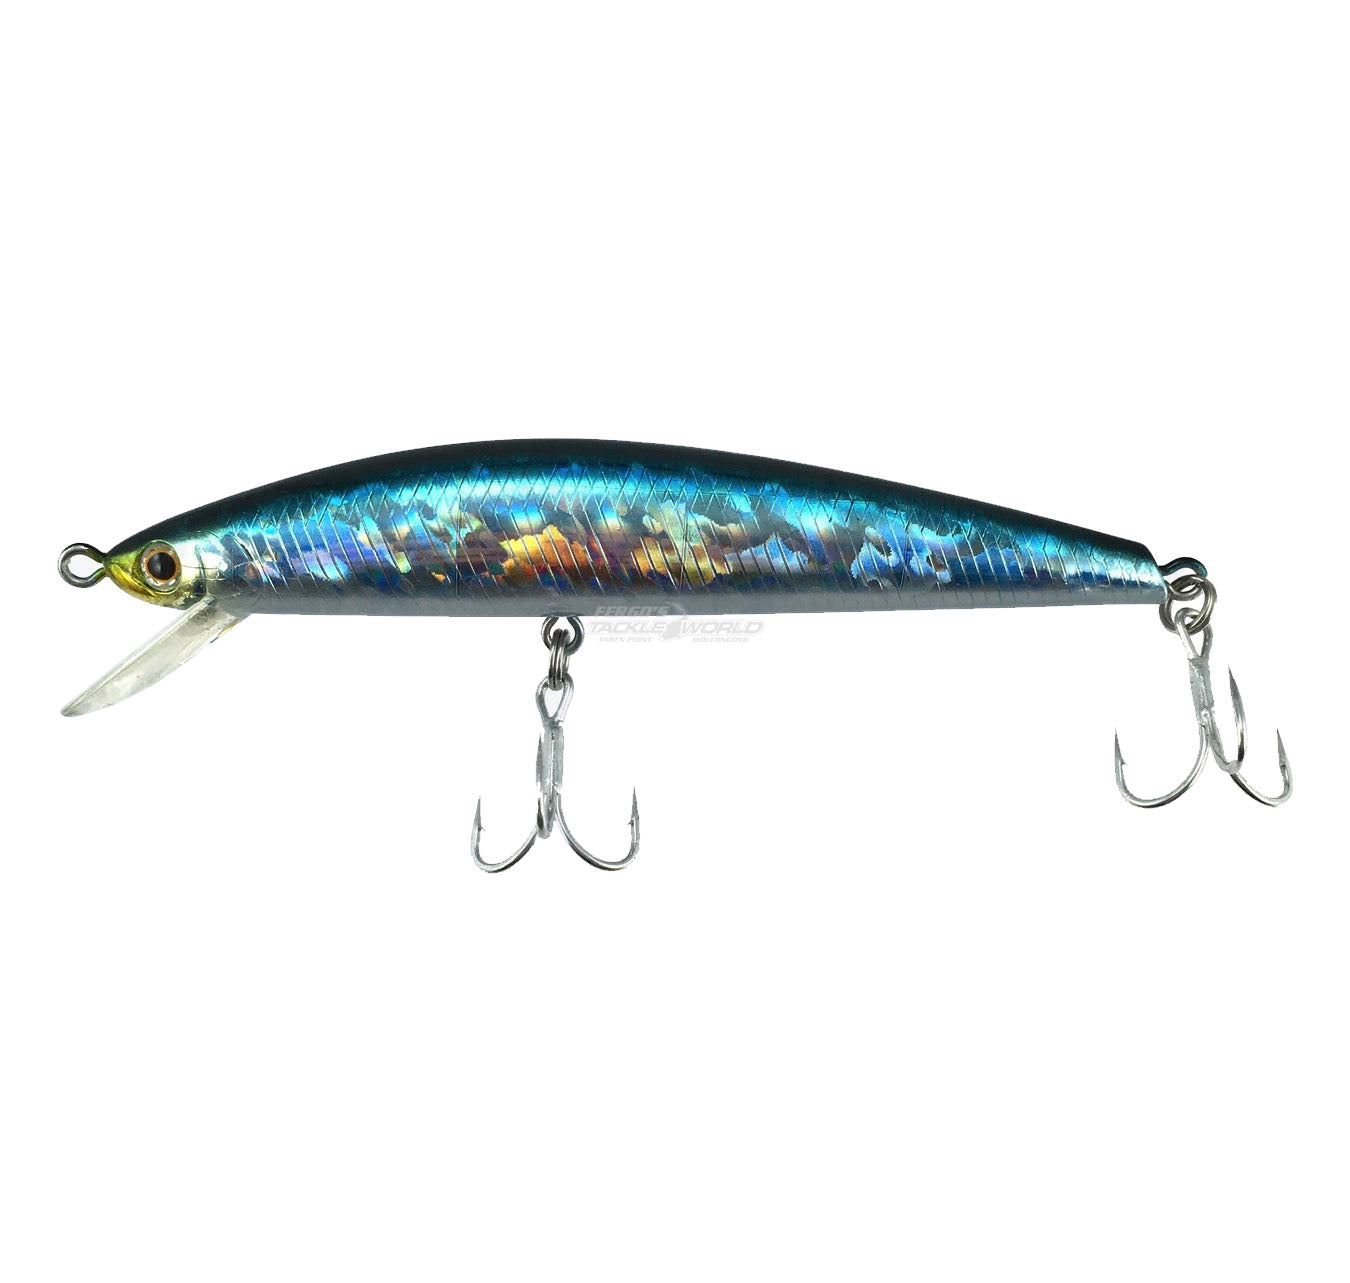 Jackson Athlete 12F Lure Col UI